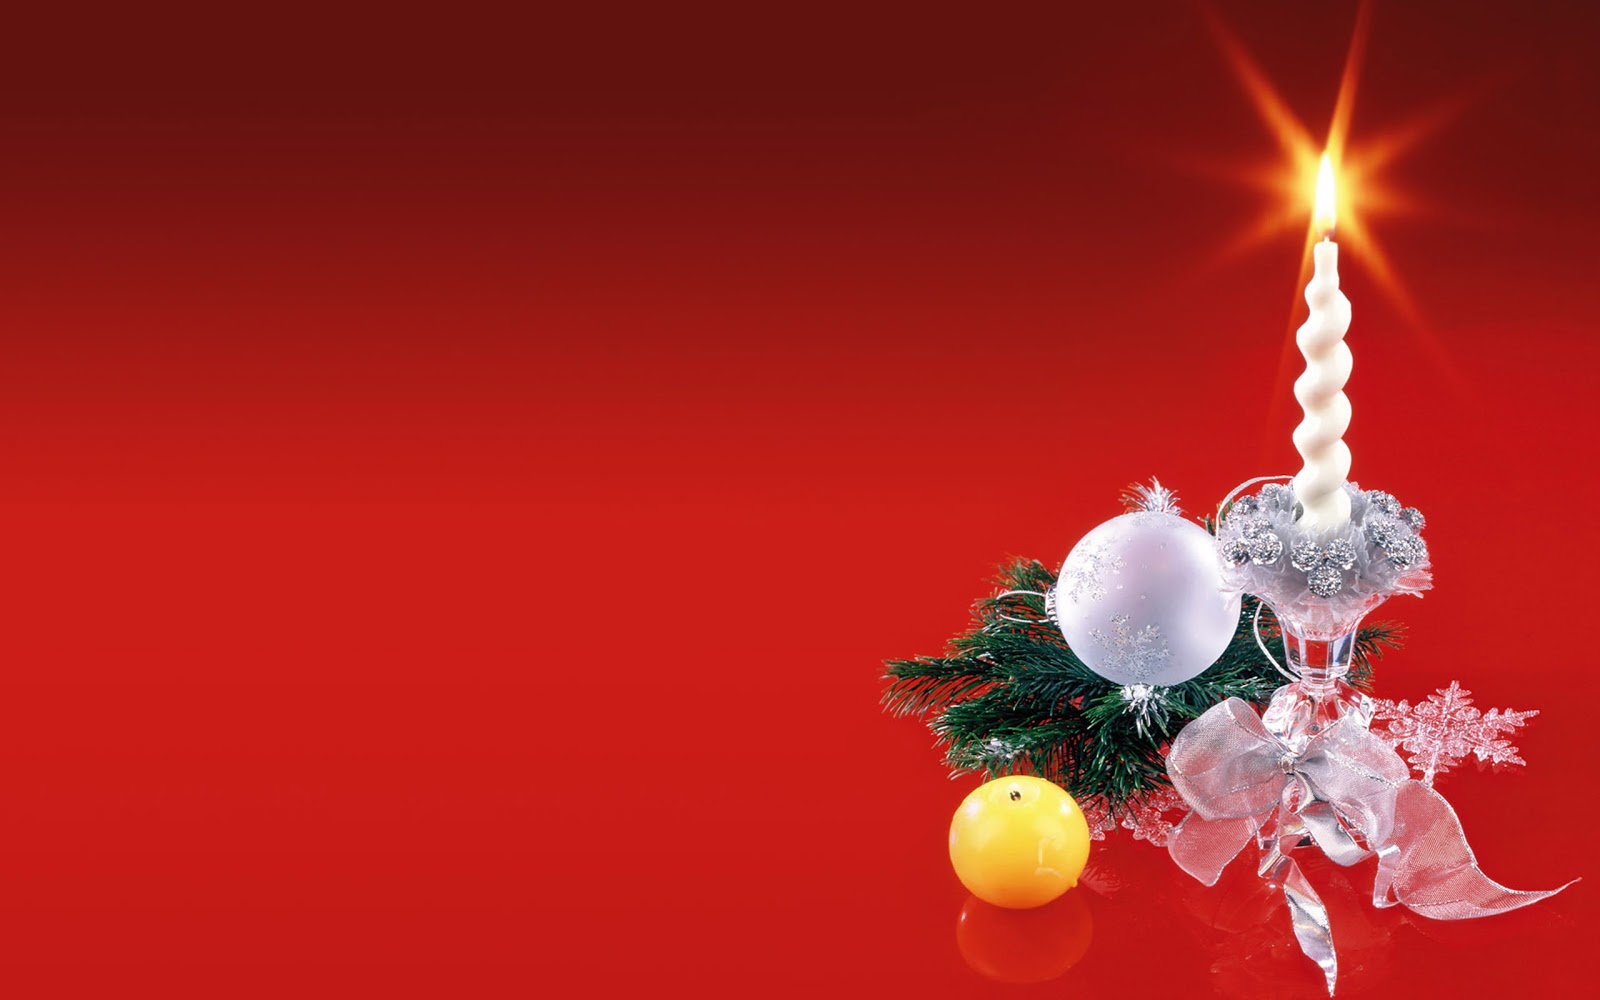 Christmas Landscapes: Wallpaper Christmas Candles